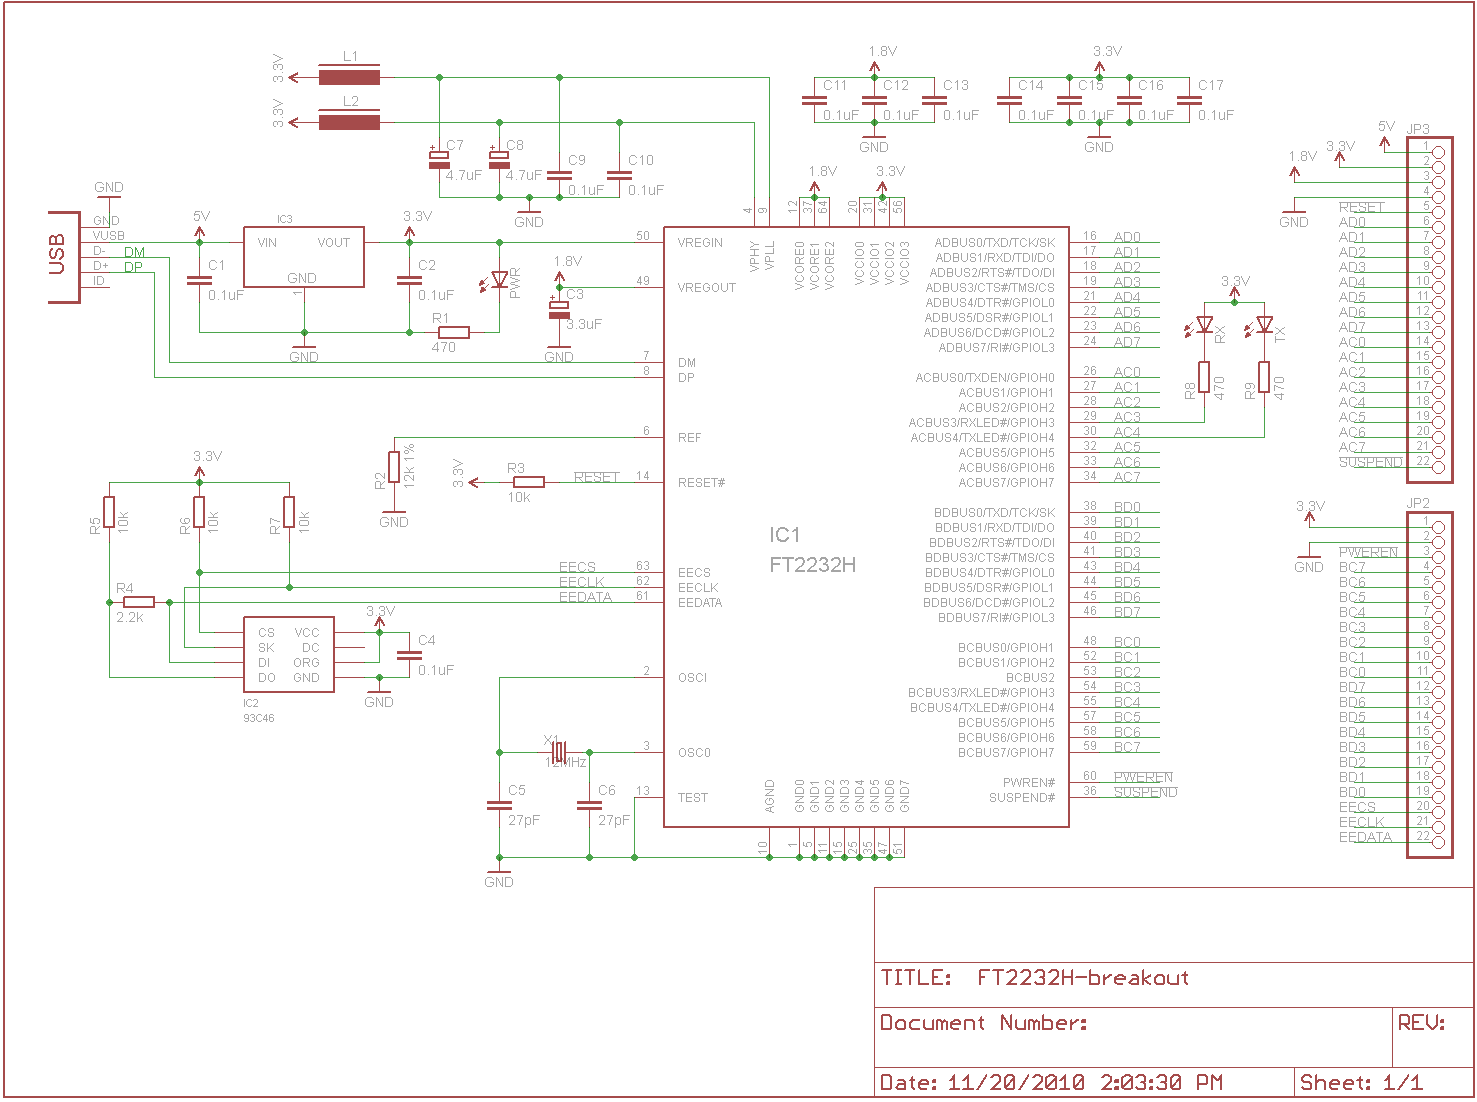 Flameman Blackfin Avr Jtag Ftdi Cable Schematic Ft2232 Breakout Board